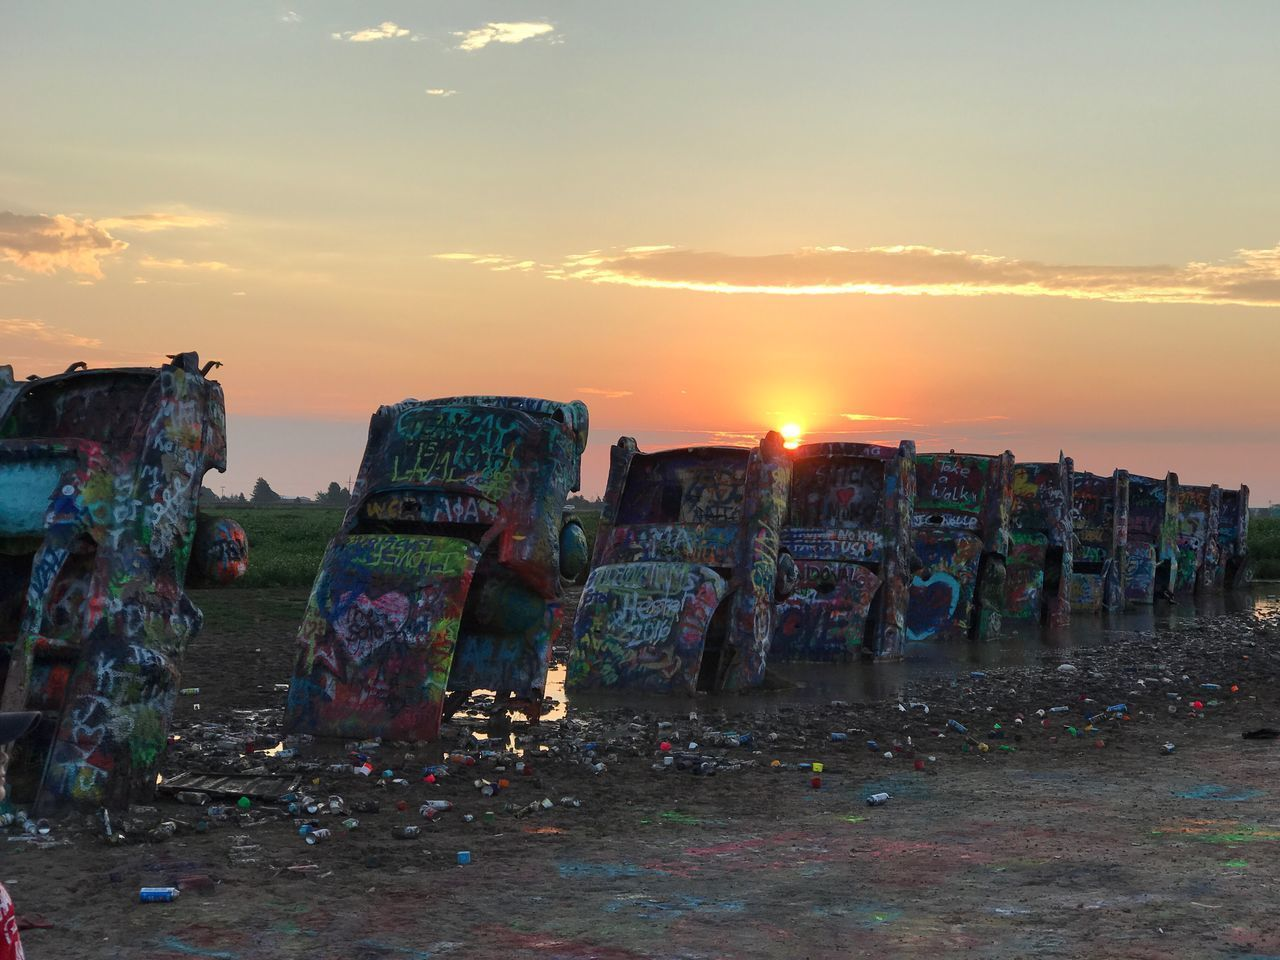 sunset, sky, garbage, cloud - sky, no people, outdoors, nature, day